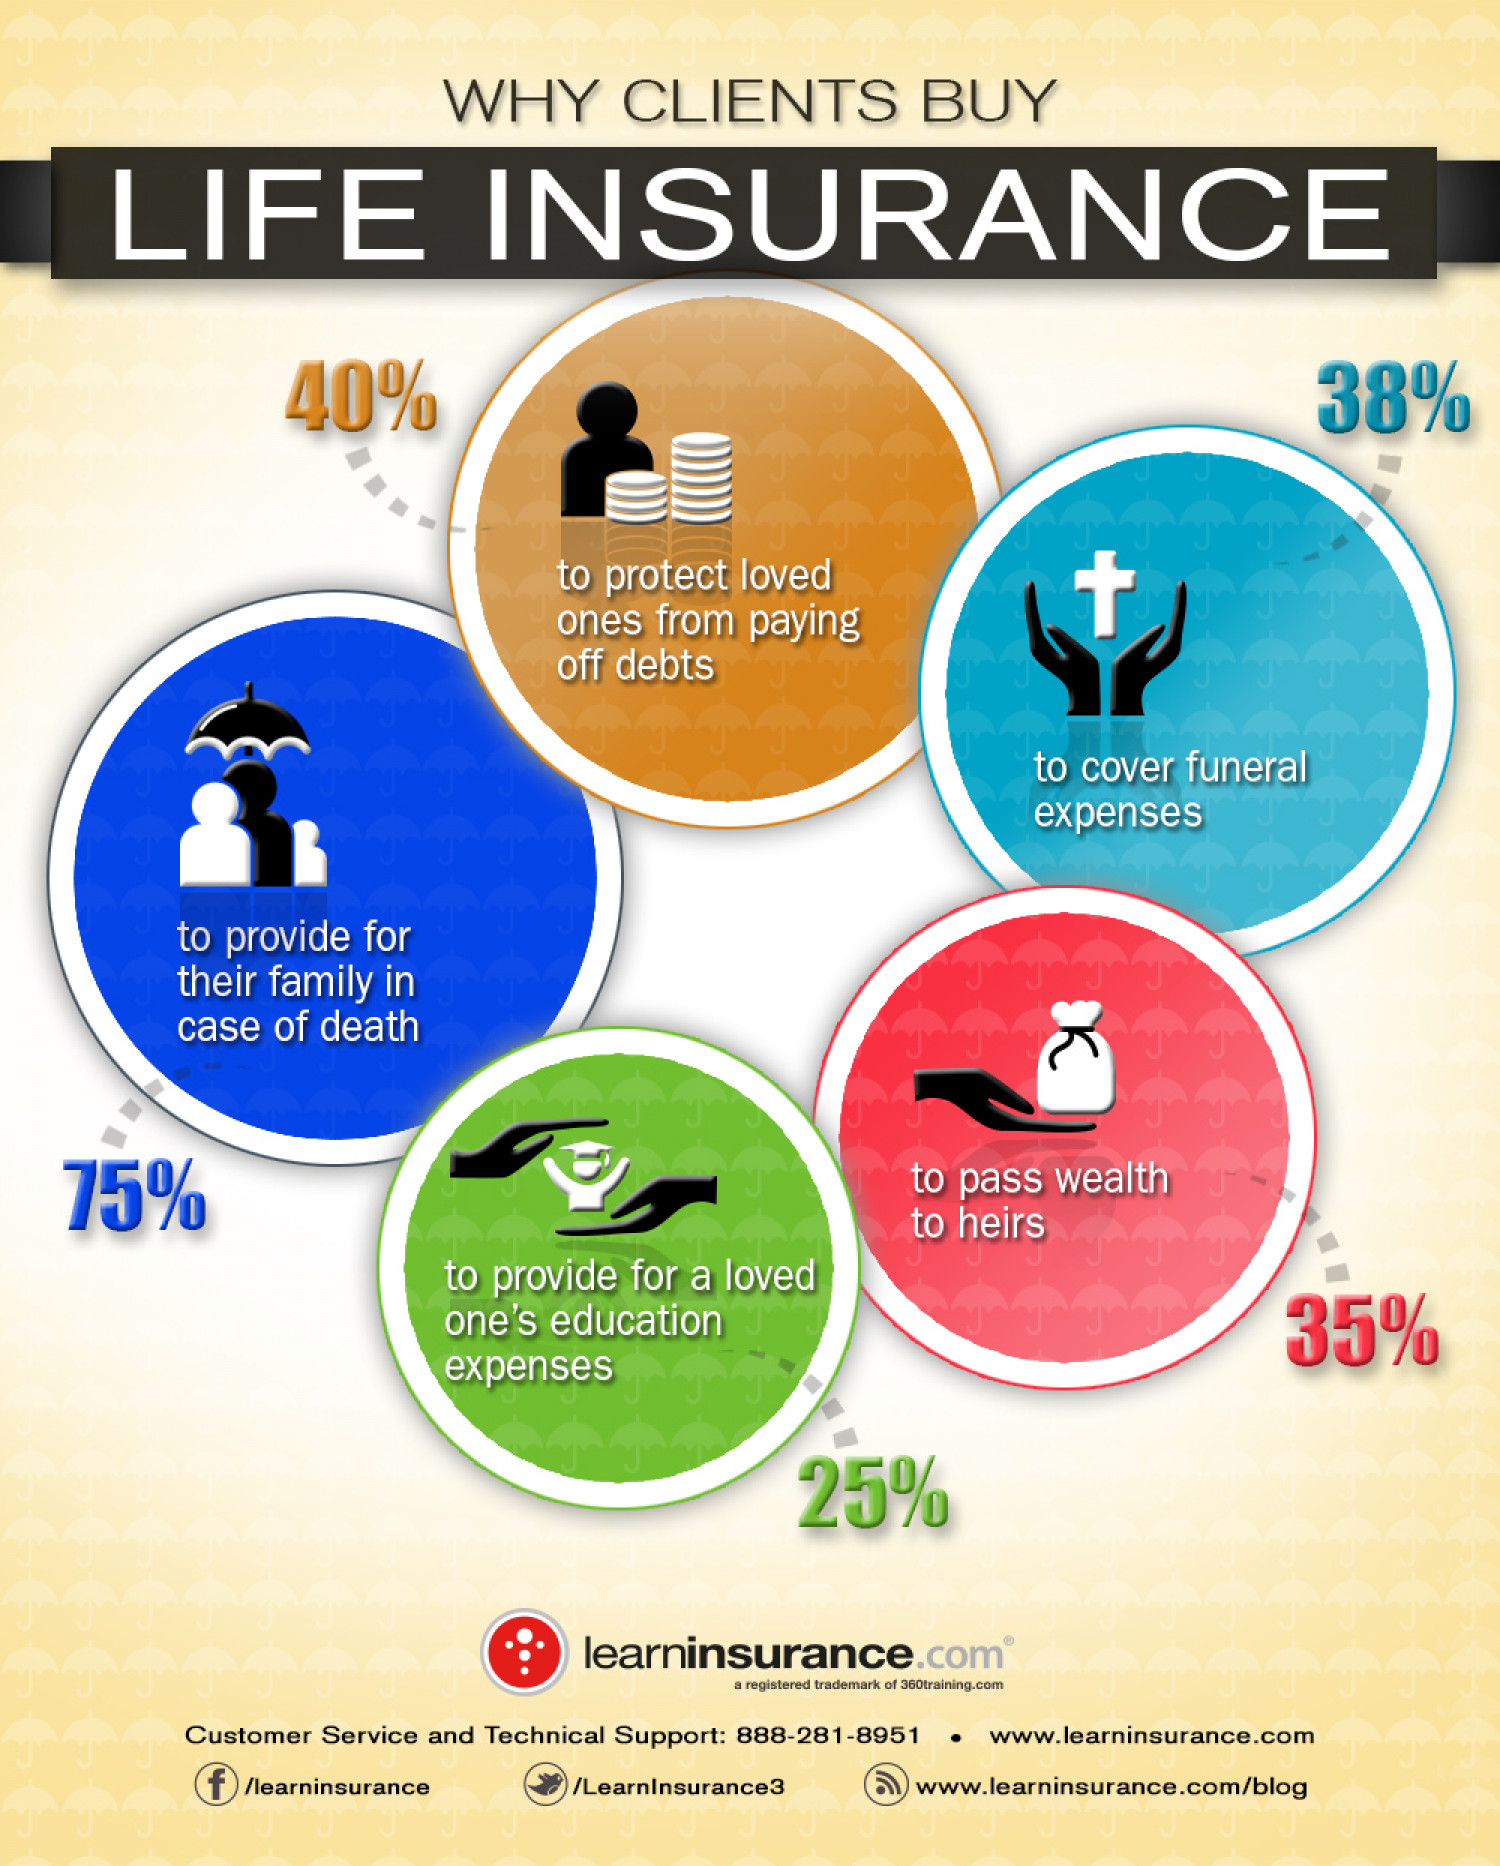 Why Clients Buy Life Insurance Infographic